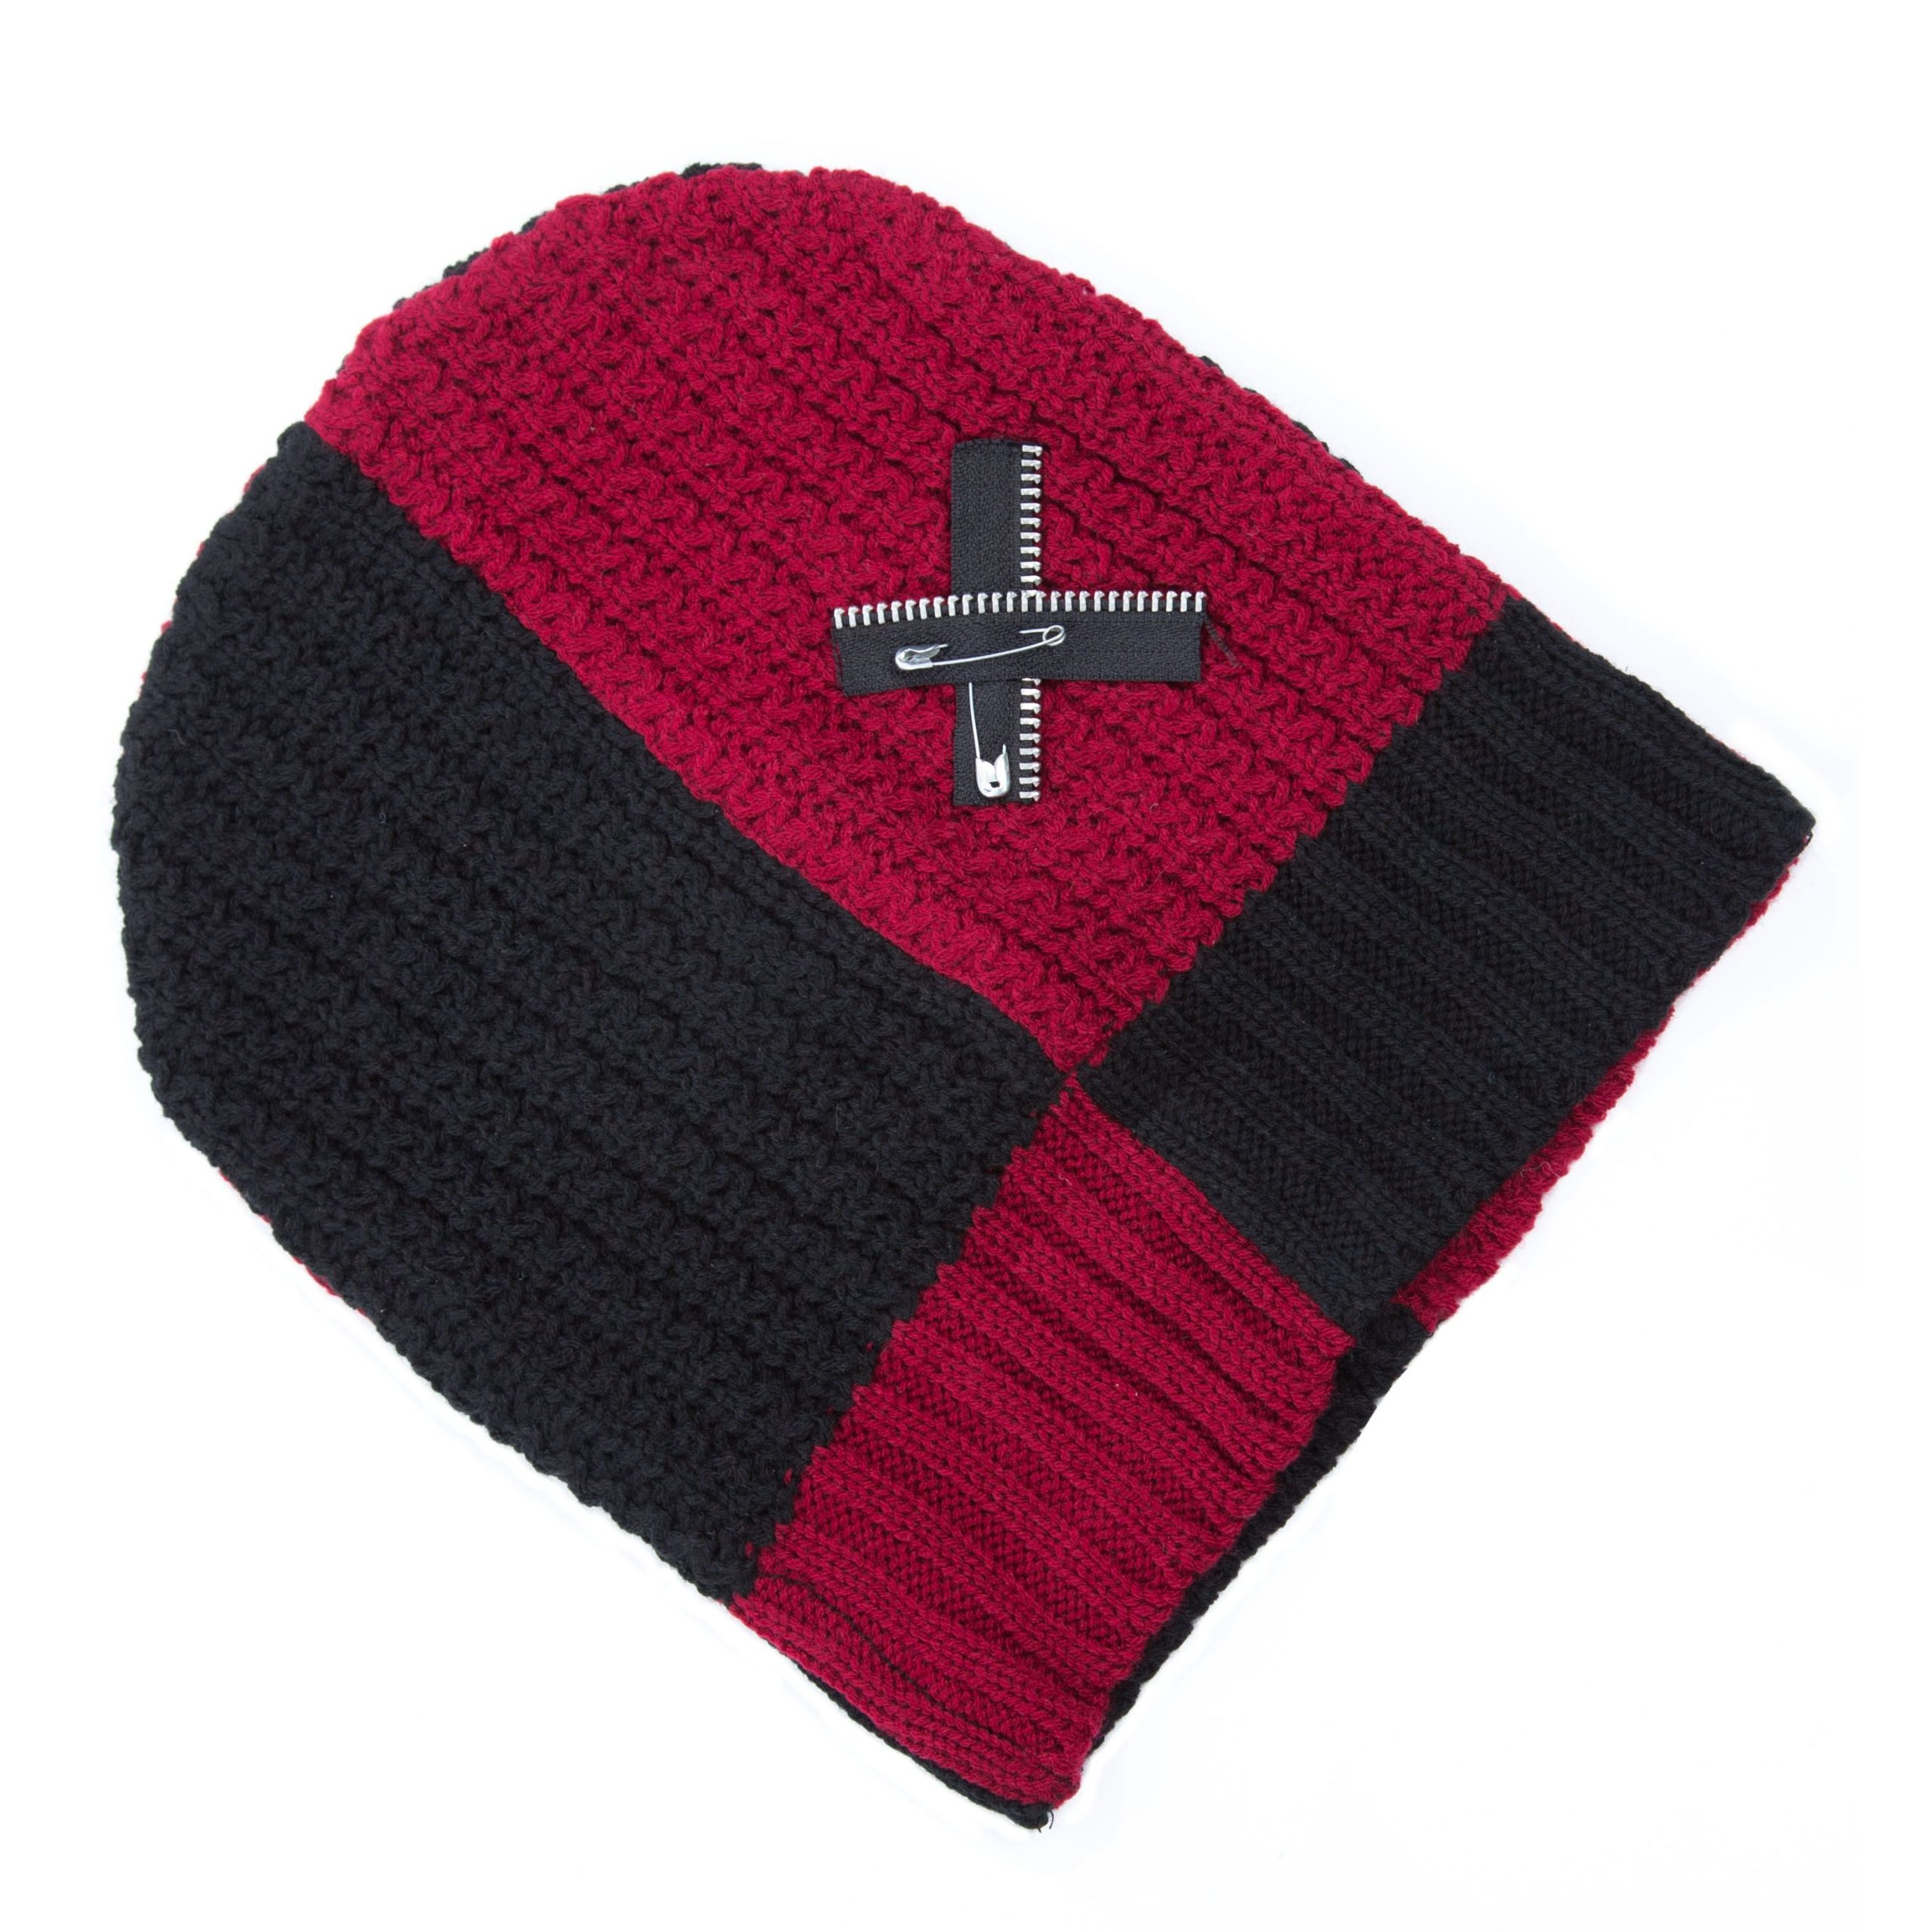 pitch-hate-hat-black-red-heartless-2